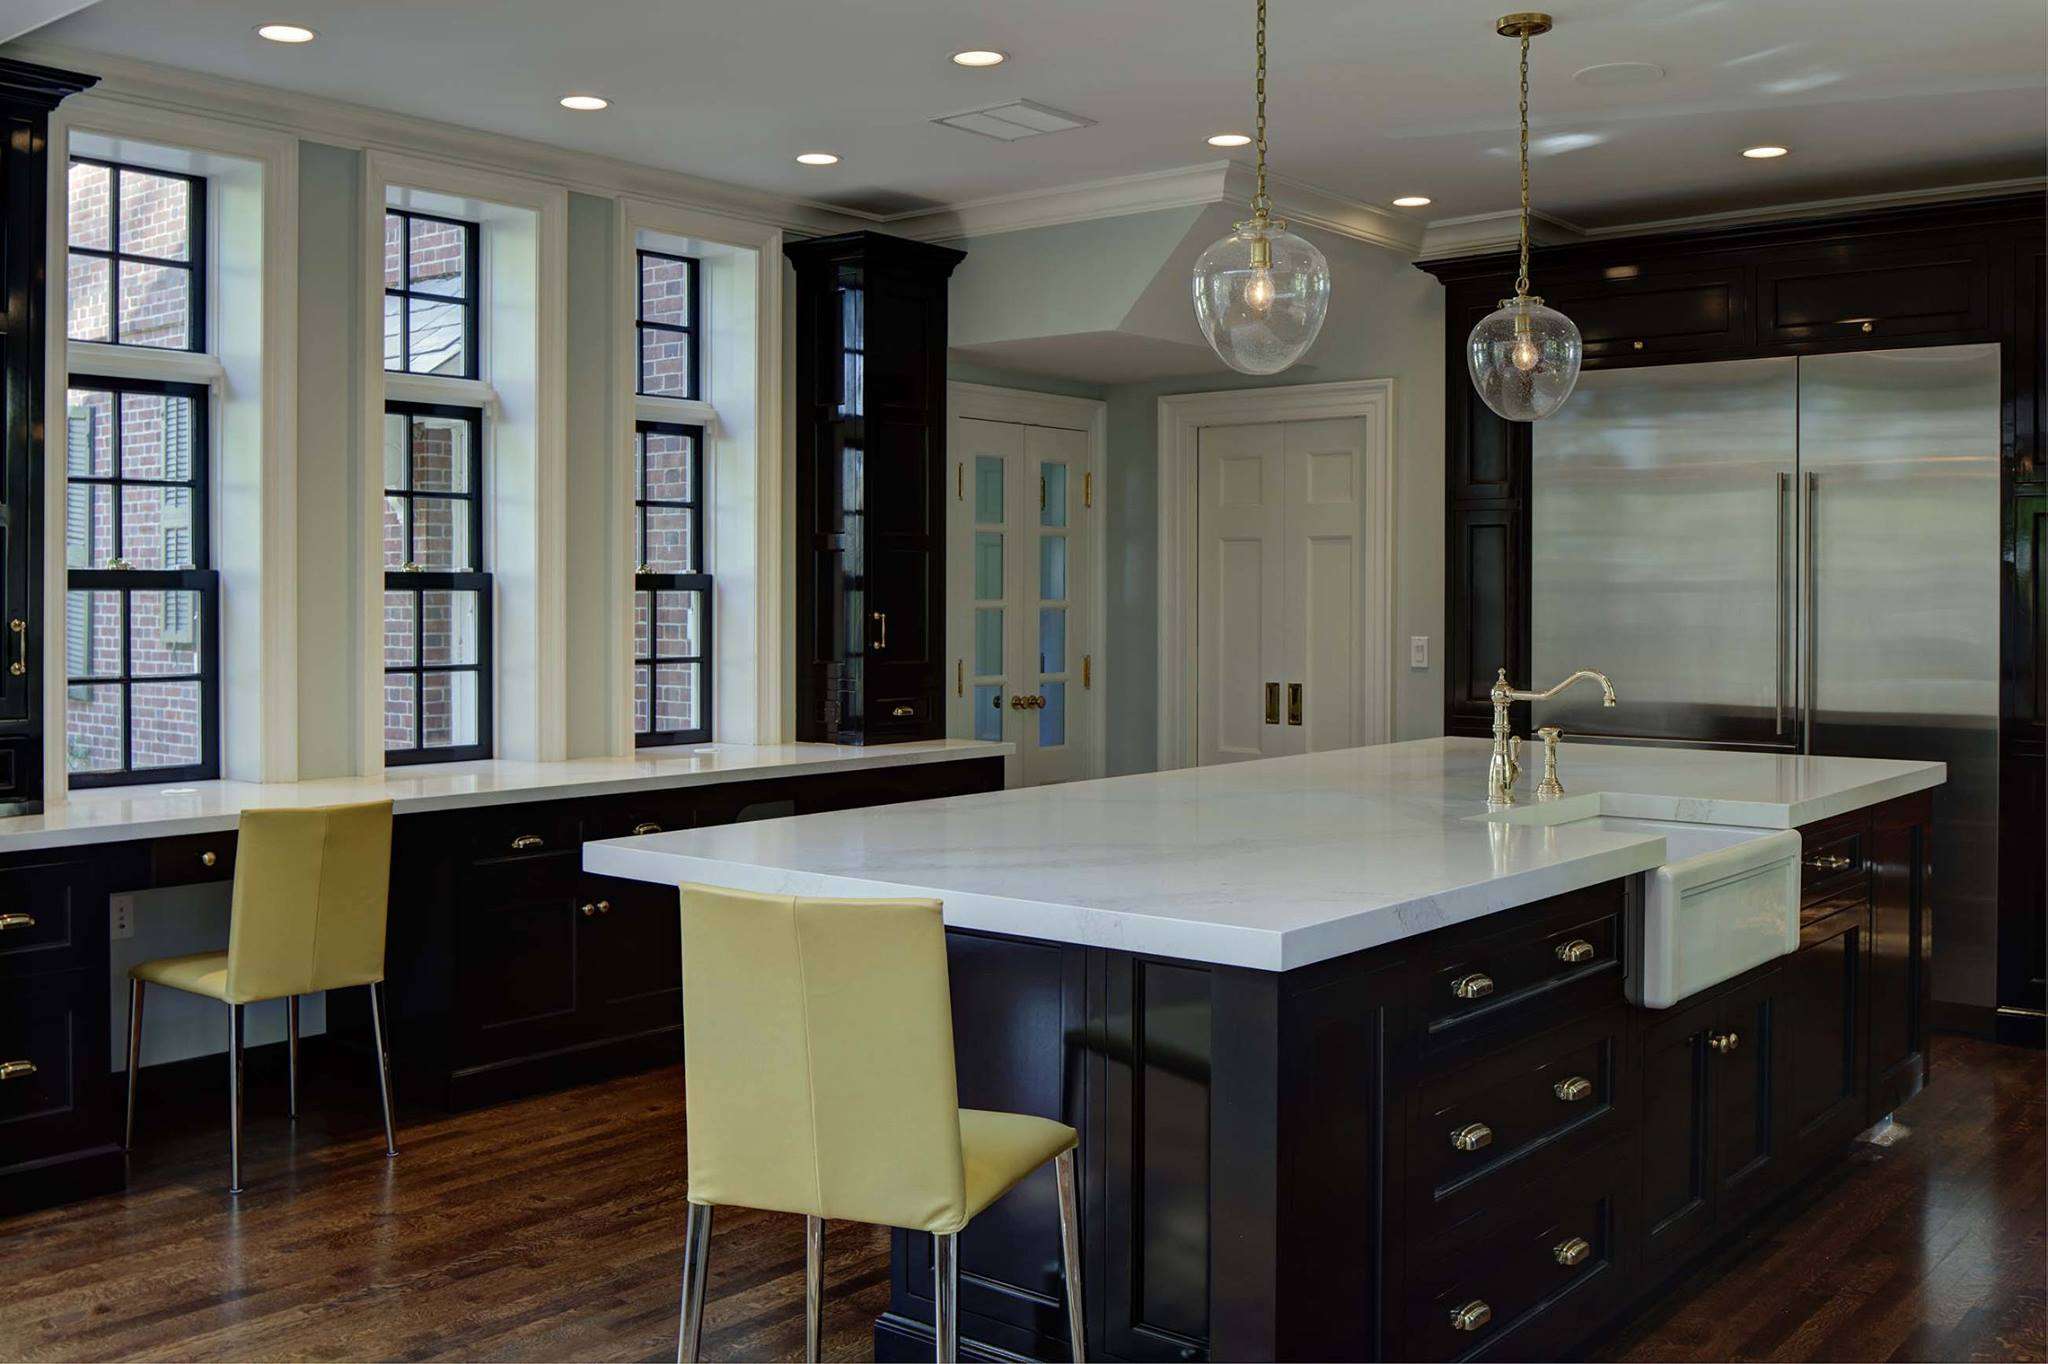 Craft Maid Handmade Cabinetry Introduces A High Sheen